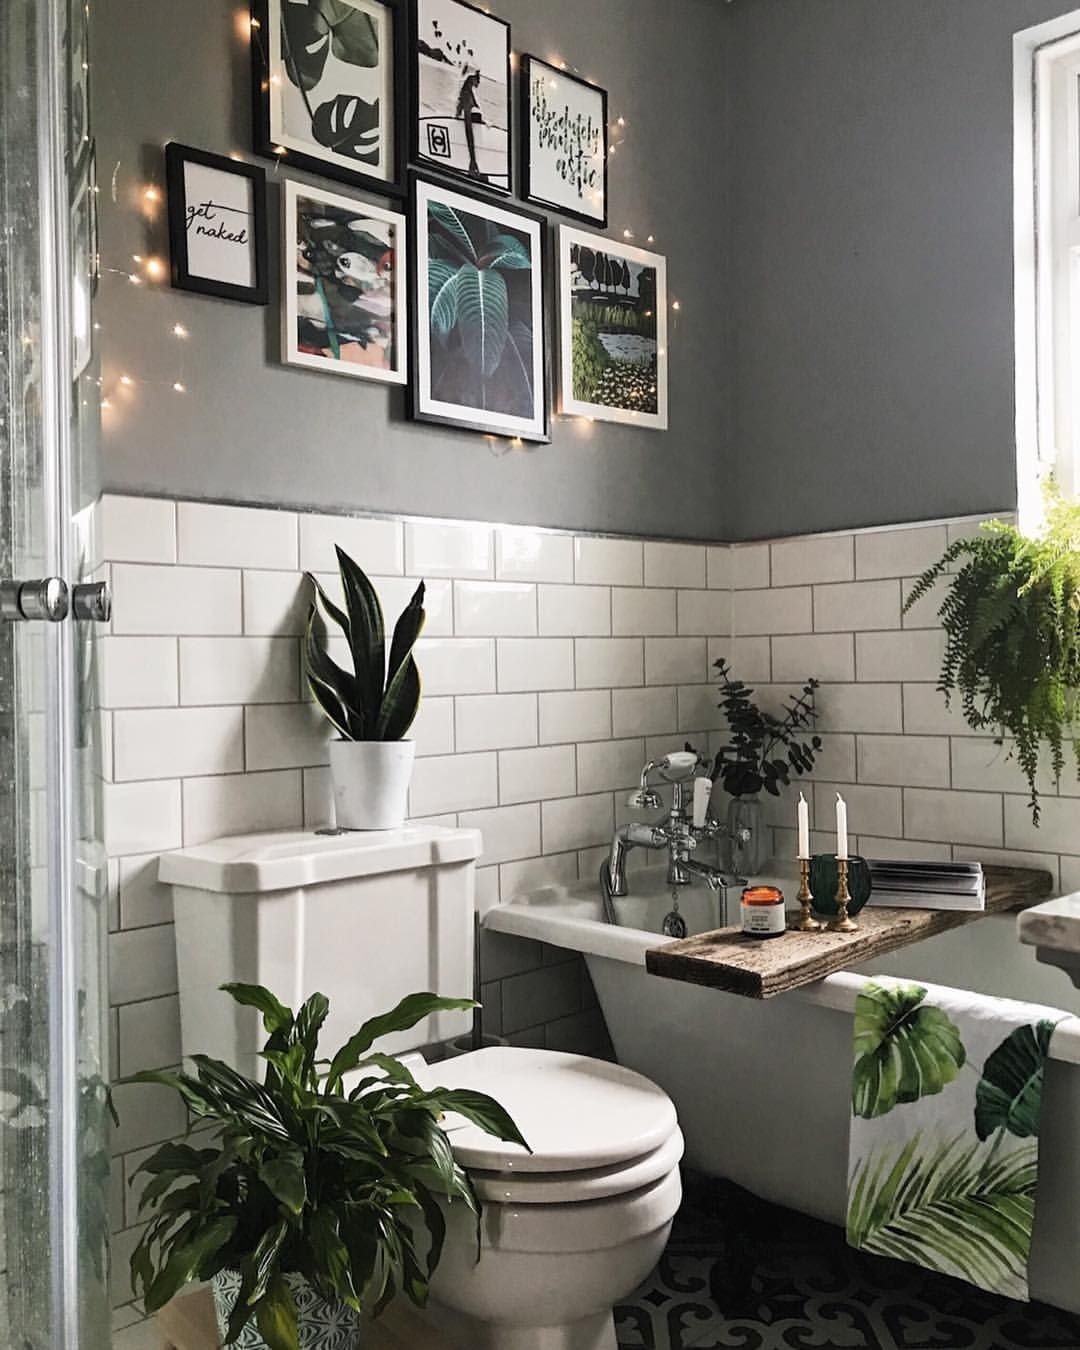 Wall Decor Bathroom Unique Gallery Wall Art In the Bathroom Grey and Metro White Tile